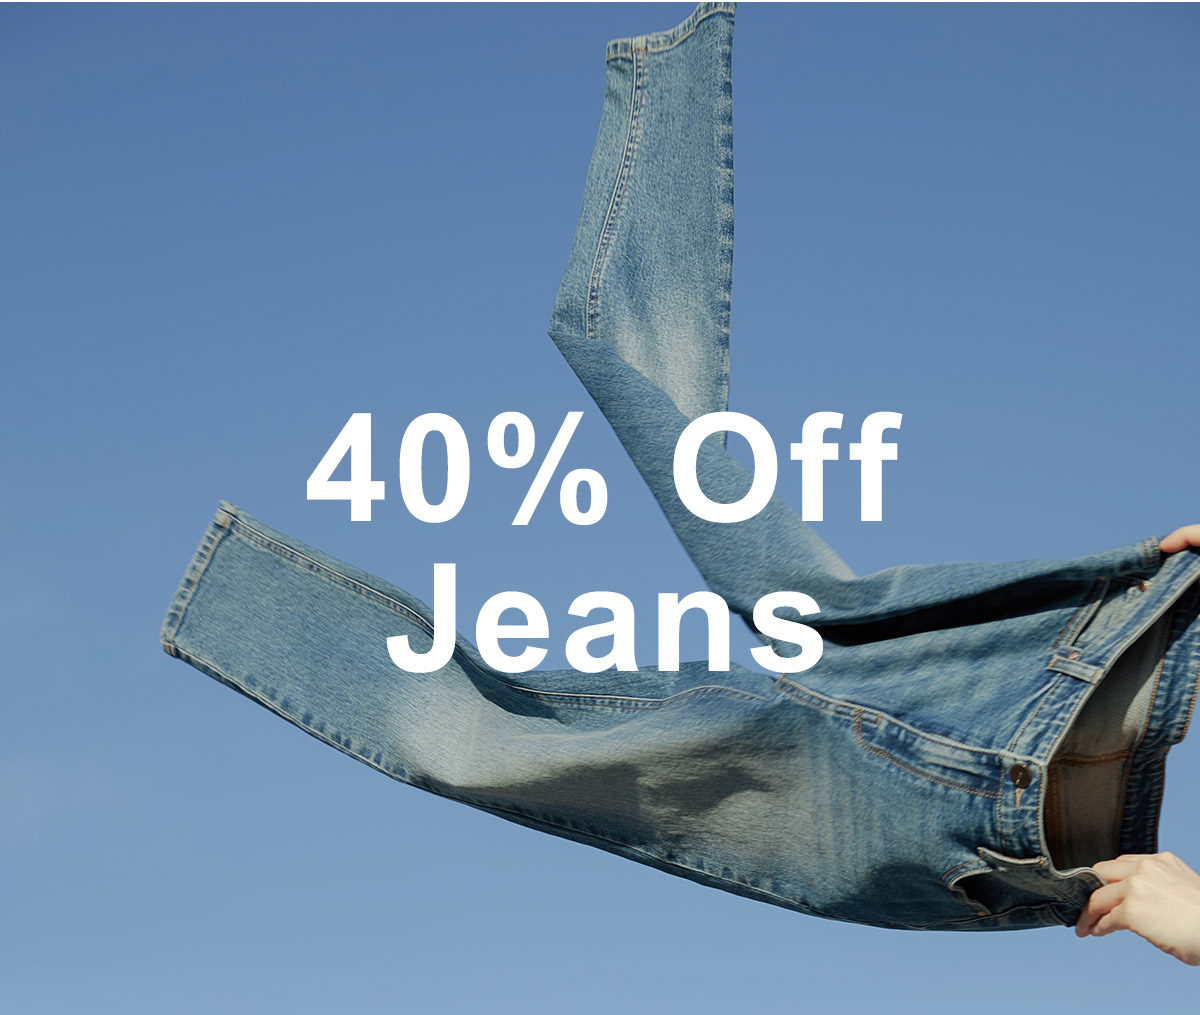 promo: 40% Off Jeans on select regular-priced styles